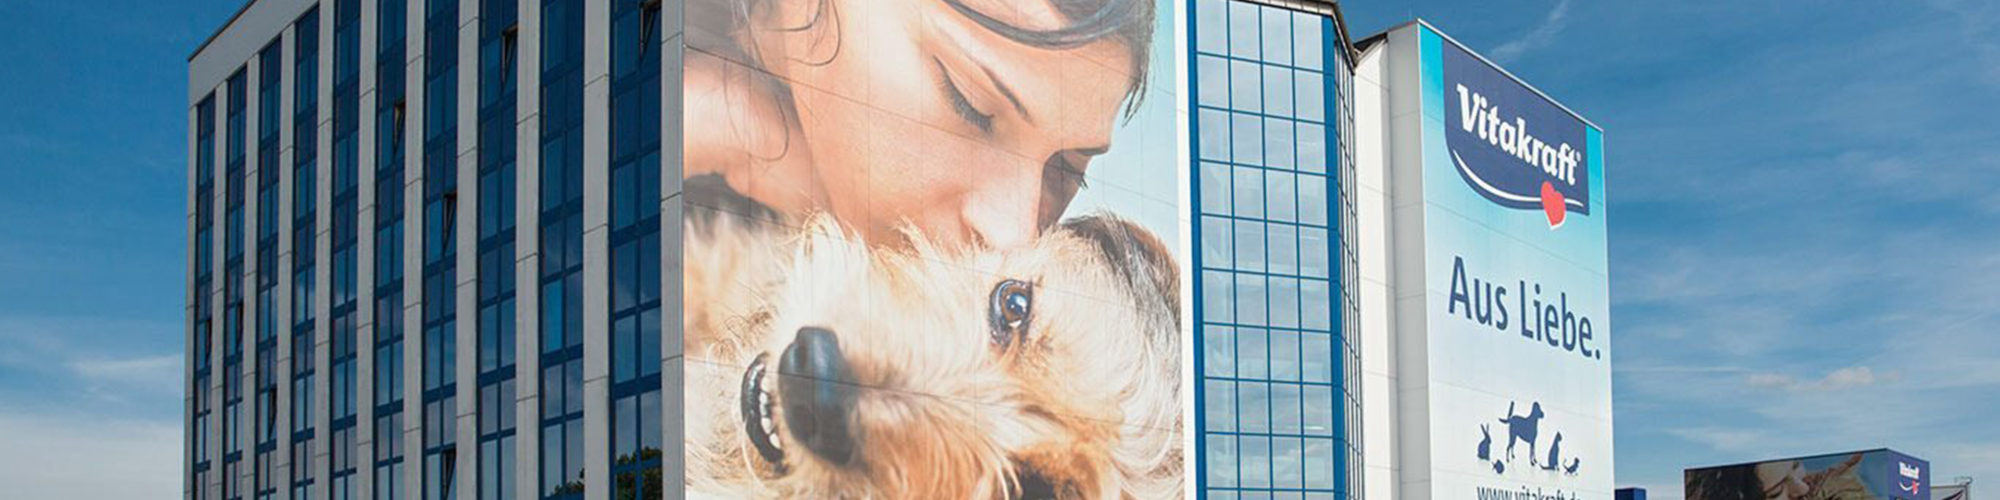 Picture of the Vitakraft company building with a poster of a woman kissing her dog, valantic Case Study Vitakraft